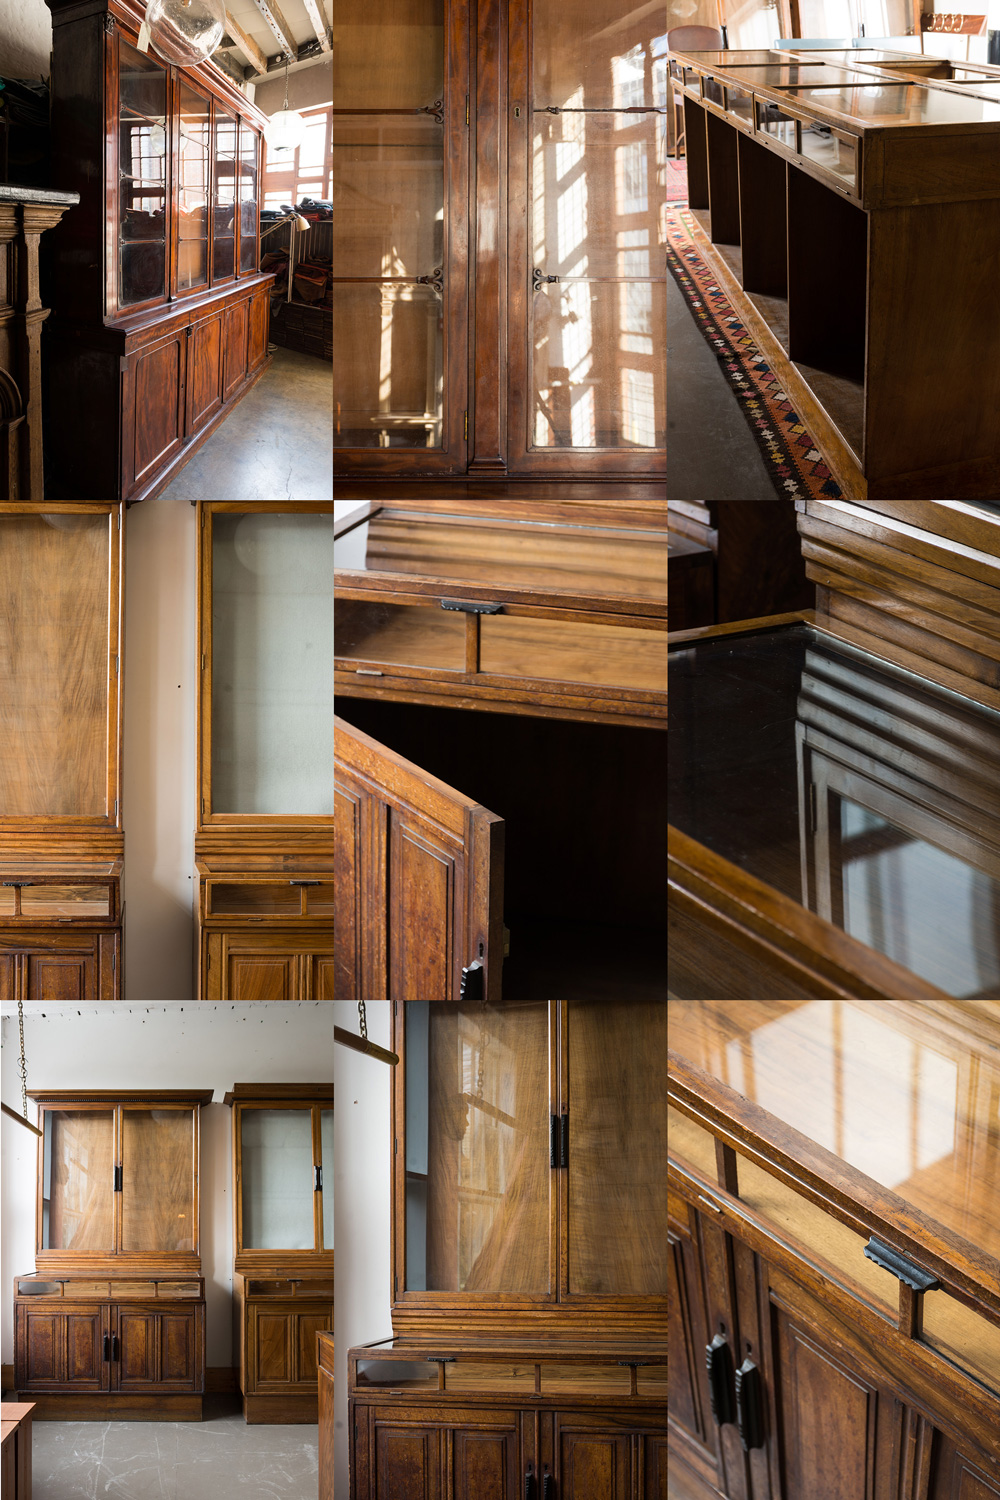 Arts & Crafts cabinets from Maggs Bros. LTD → Retrouvius ...